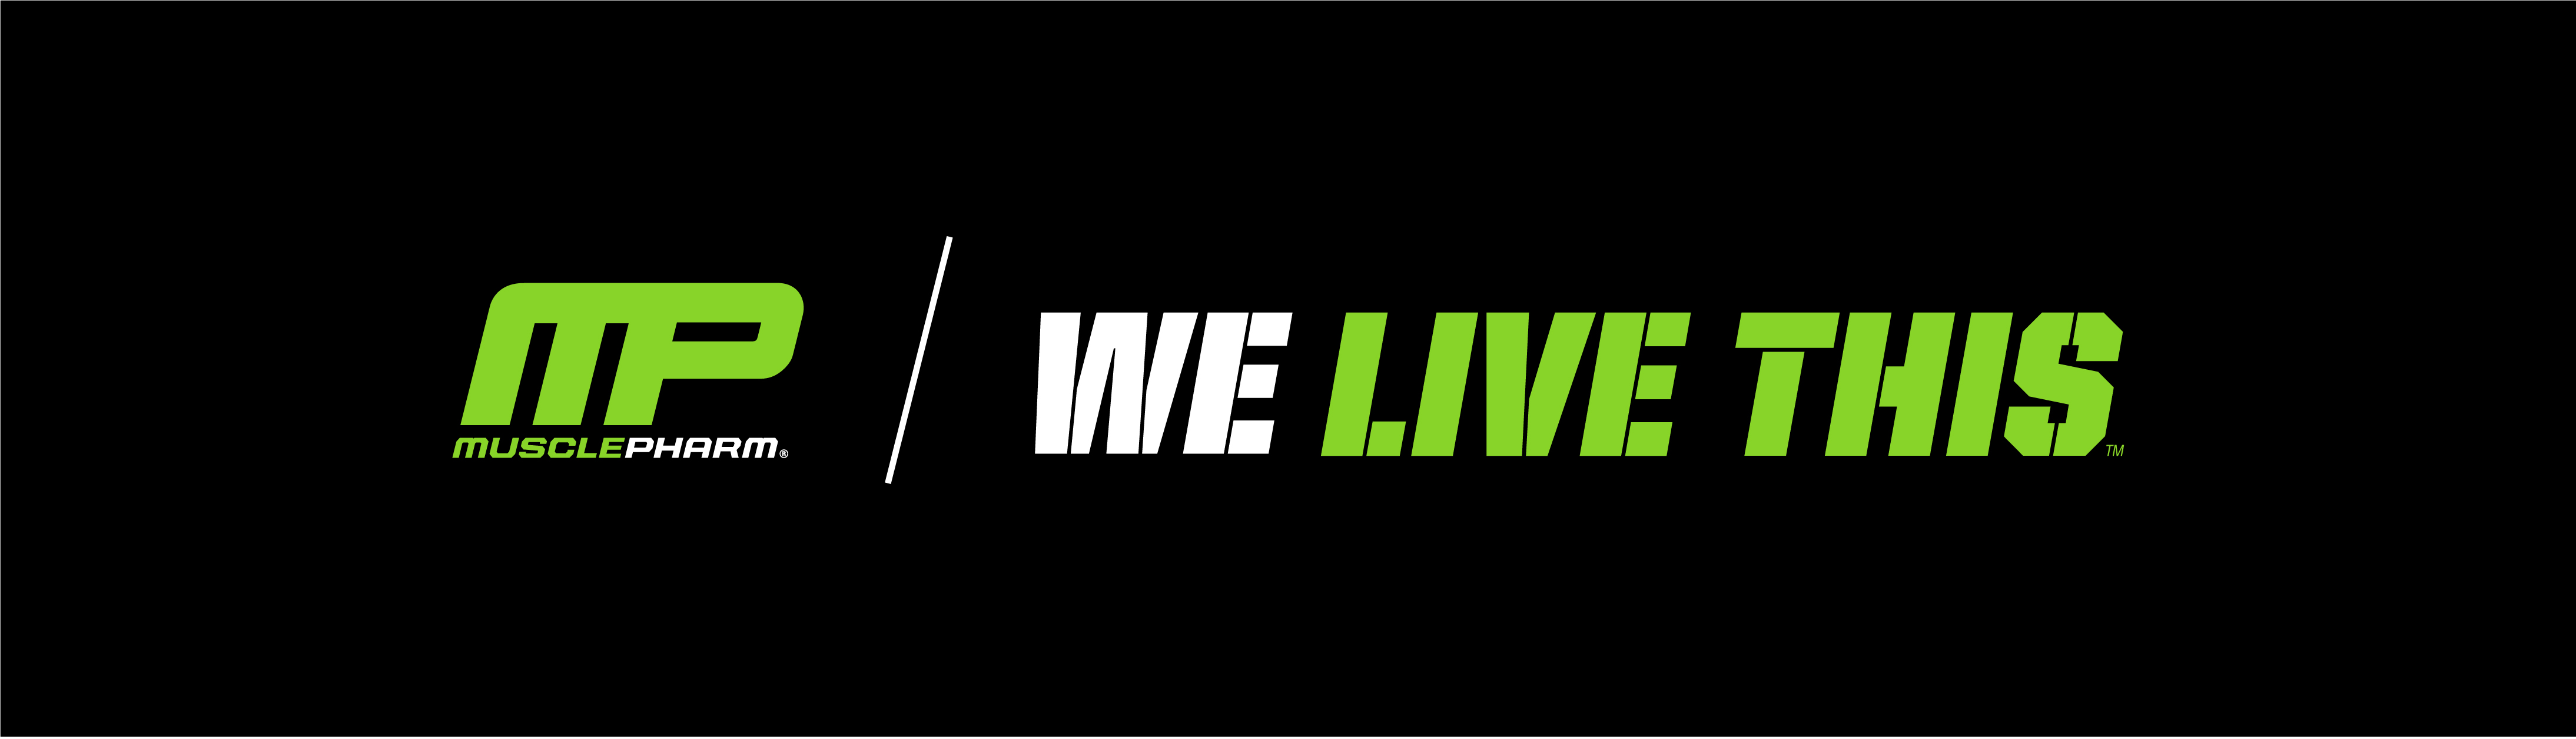 Image result for musclepharm logo